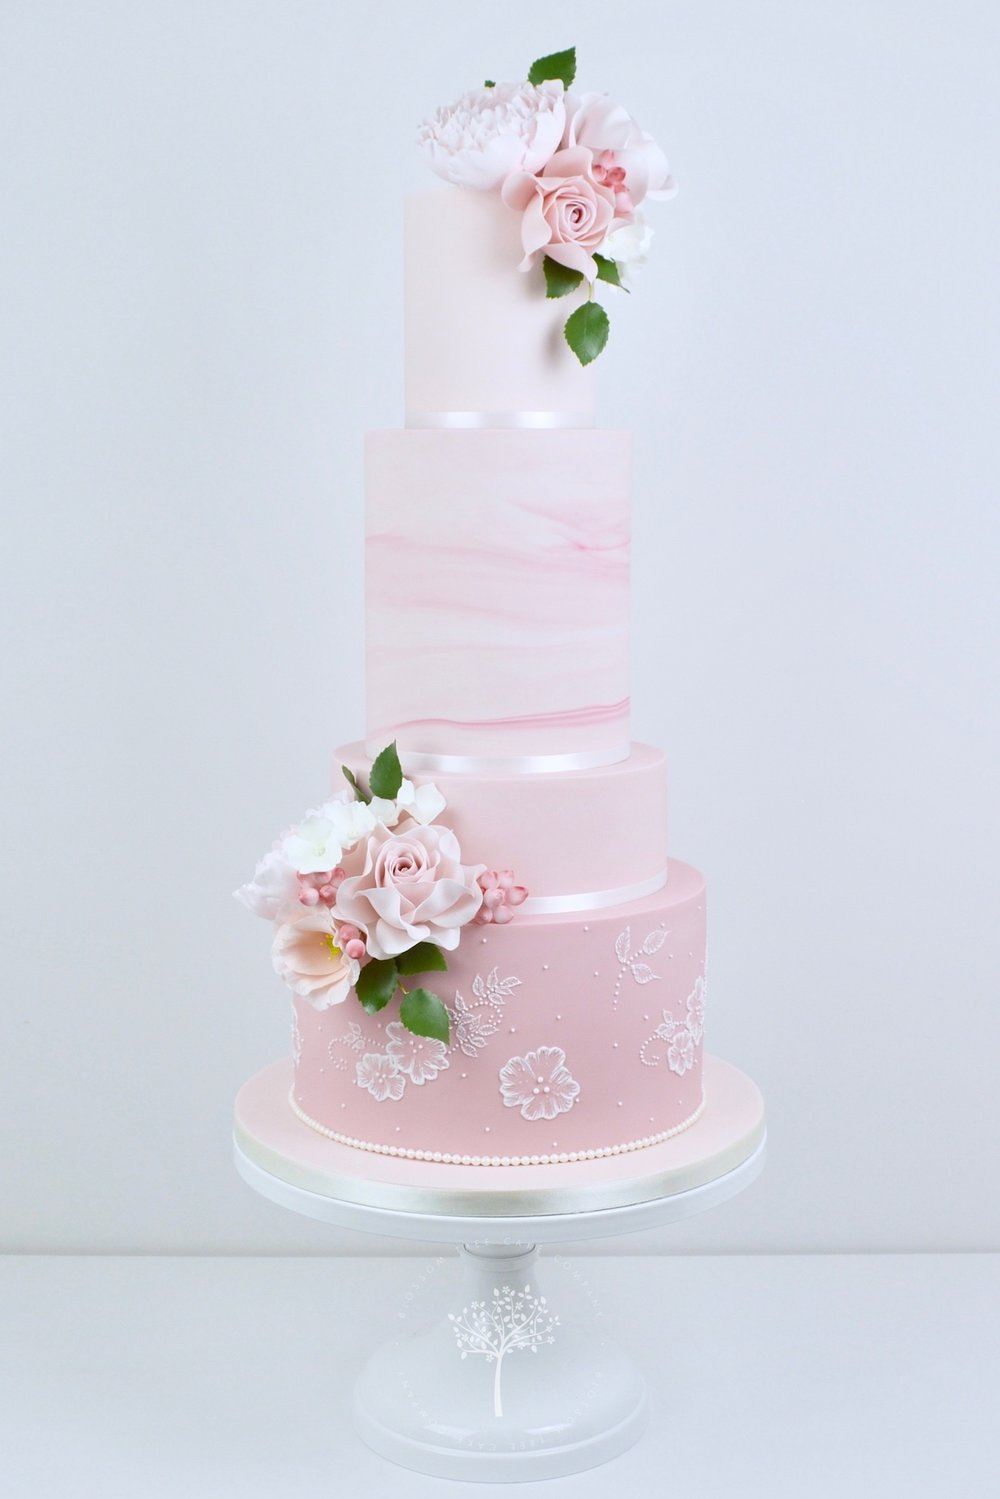 Pink Marble and Lace wedding cake by Blossom Tree Cake Company Harrogate North Yorkshire.jpg